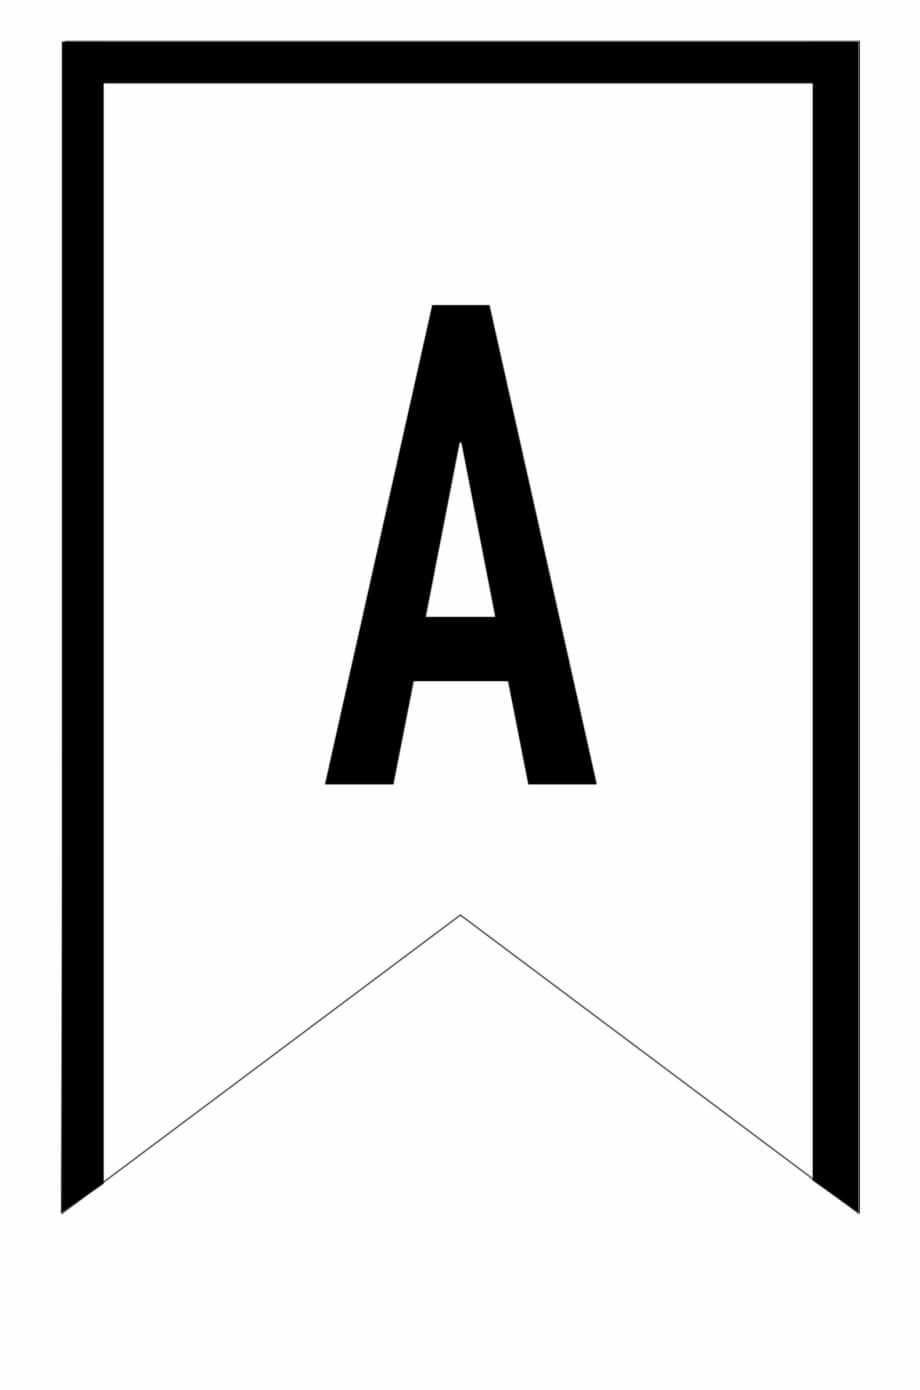 Banner Templates Free Printable Abc Letters - Printable Within Letter Templates For Banners